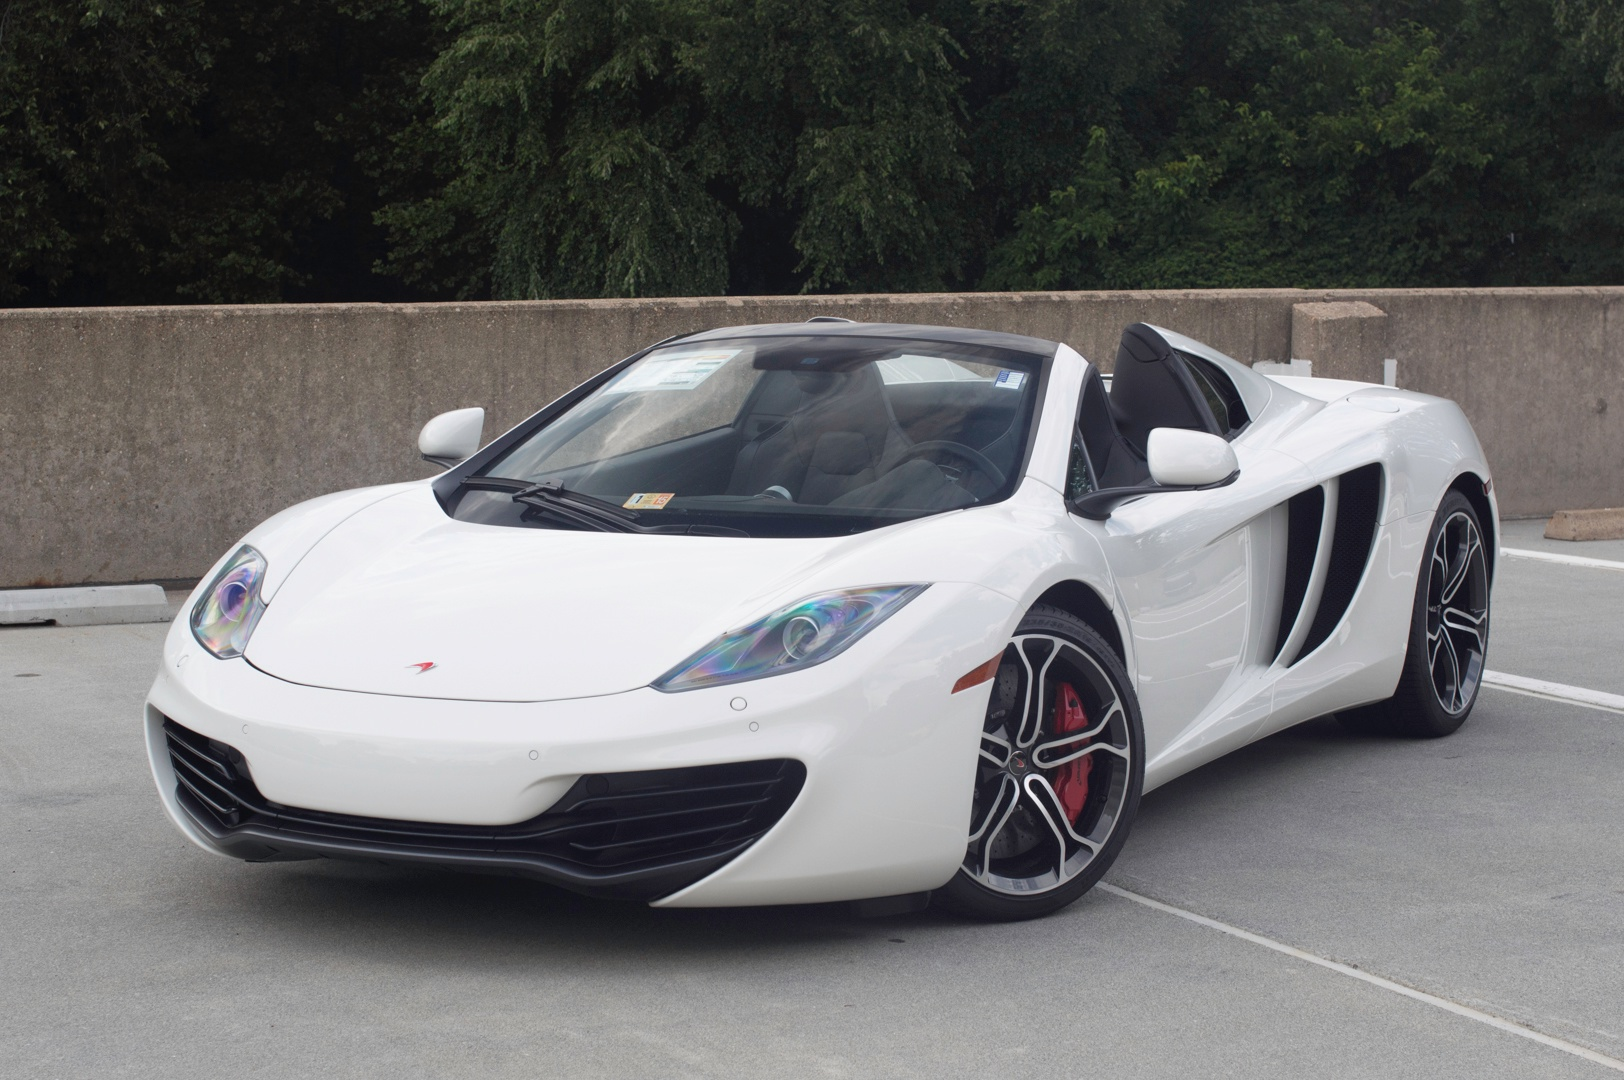 2014 mclaren mp4 12c stock 4n003415 for sale near vienna. Black Bedroom Furniture Sets. Home Design Ideas